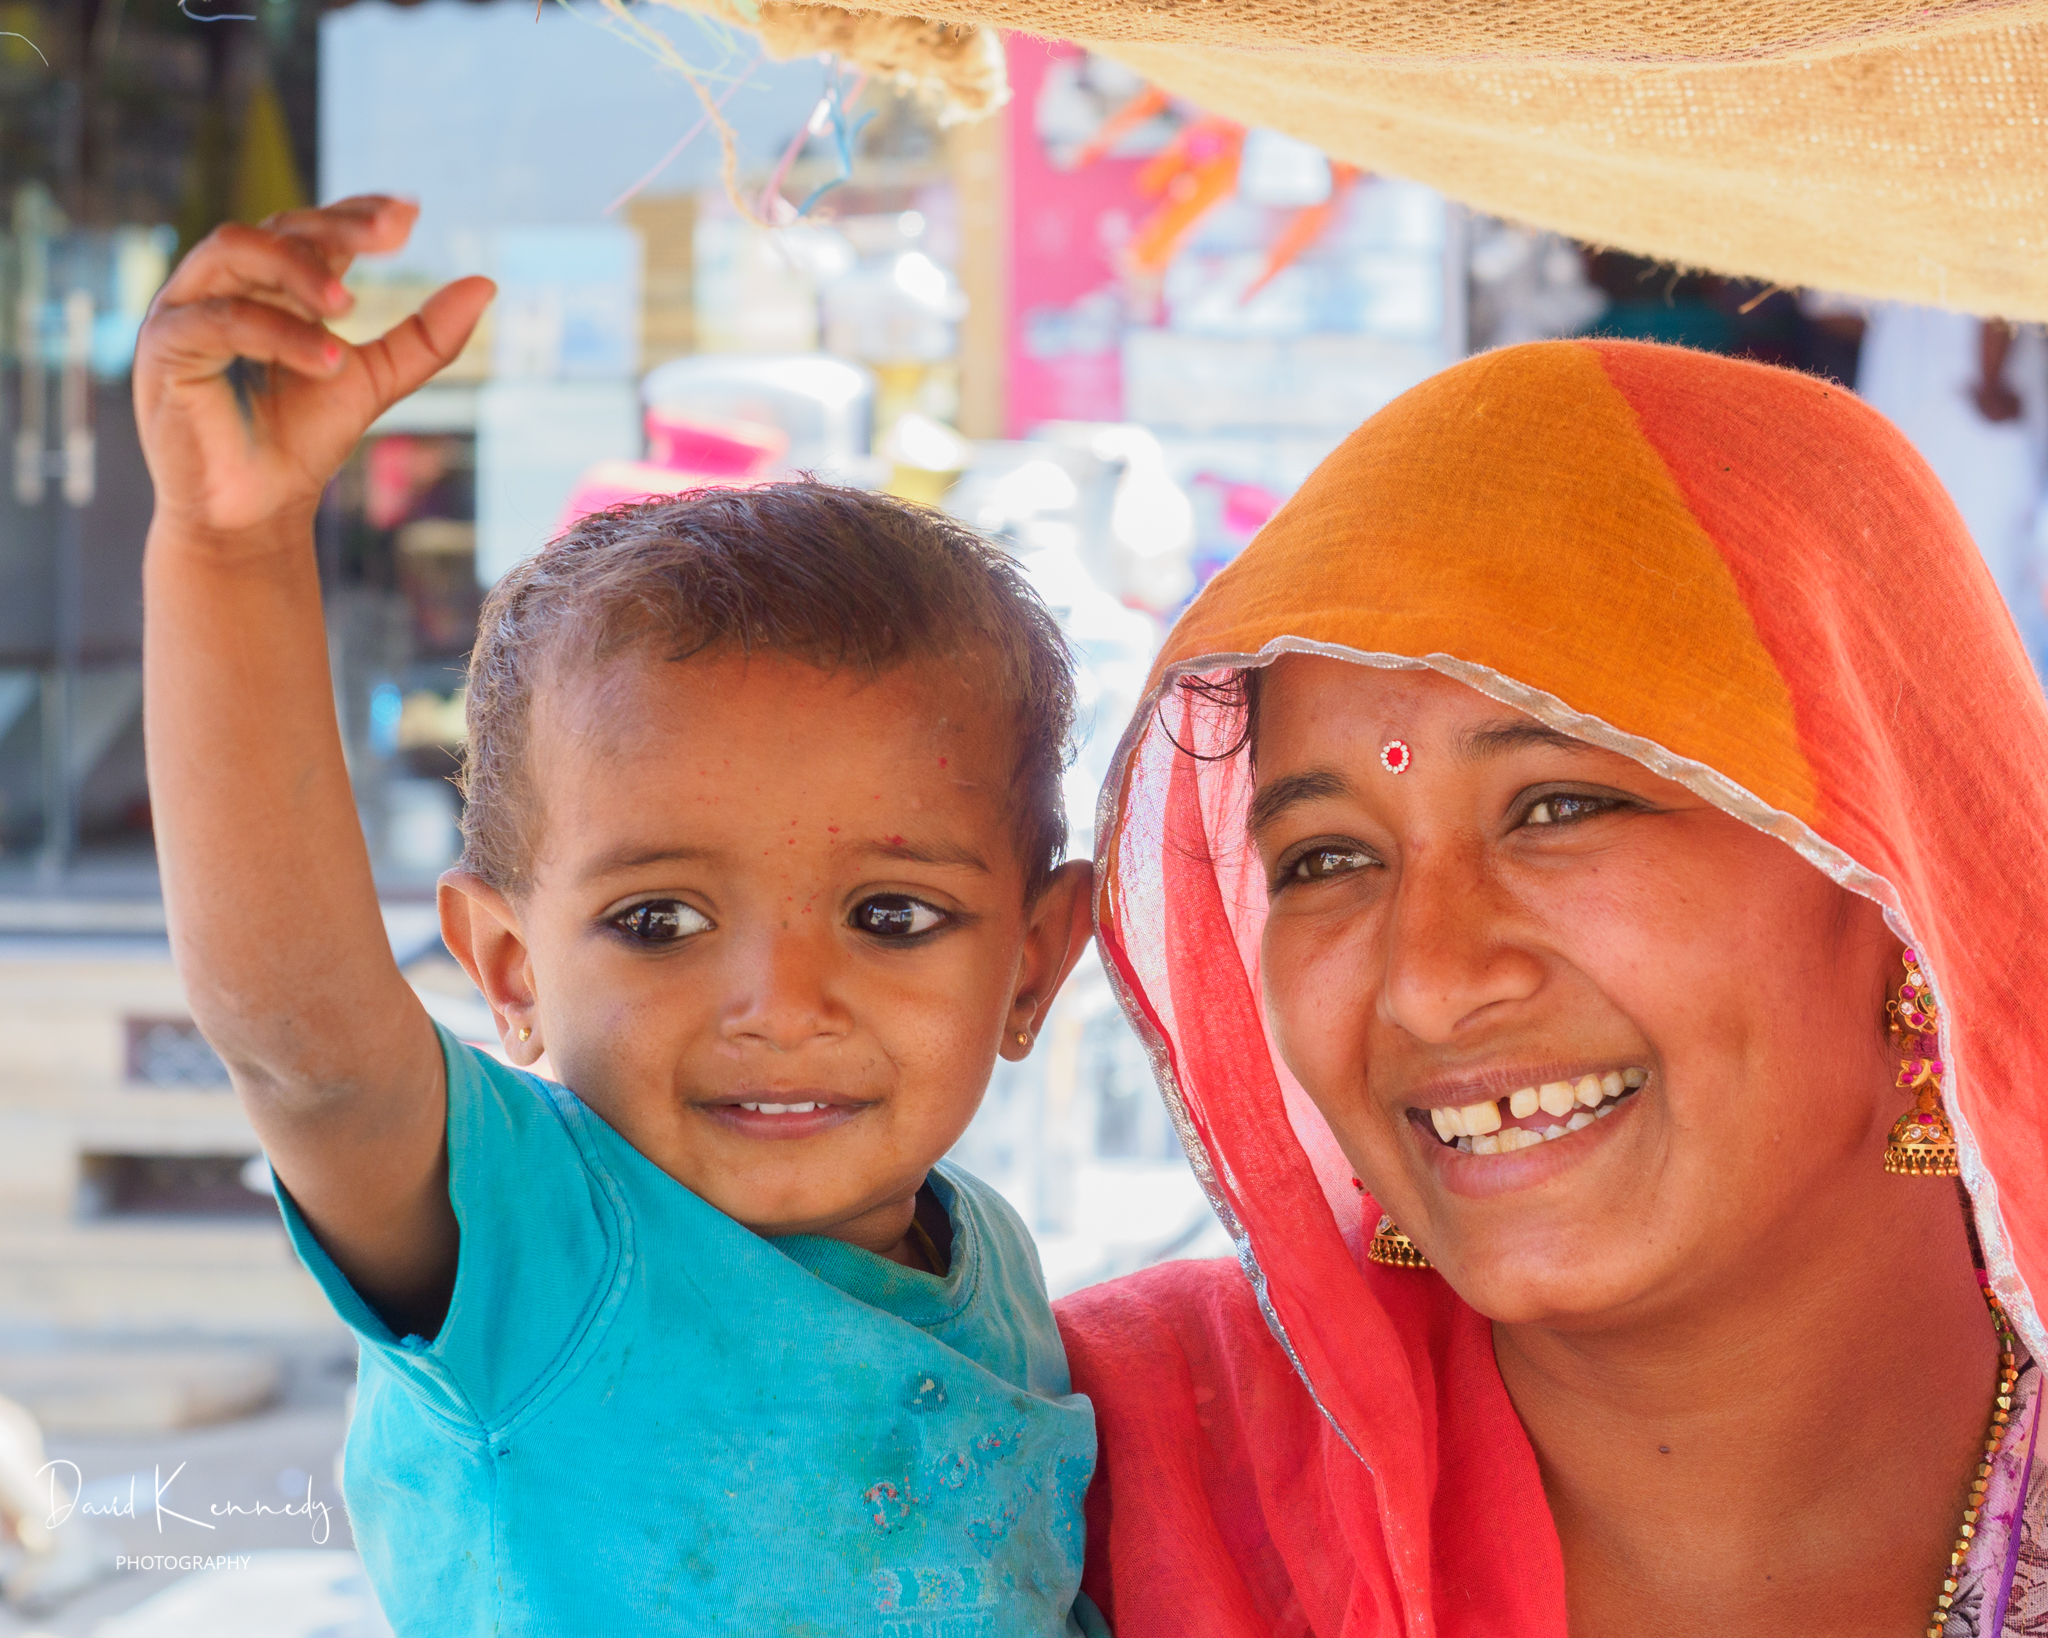 Woman with her young child in India